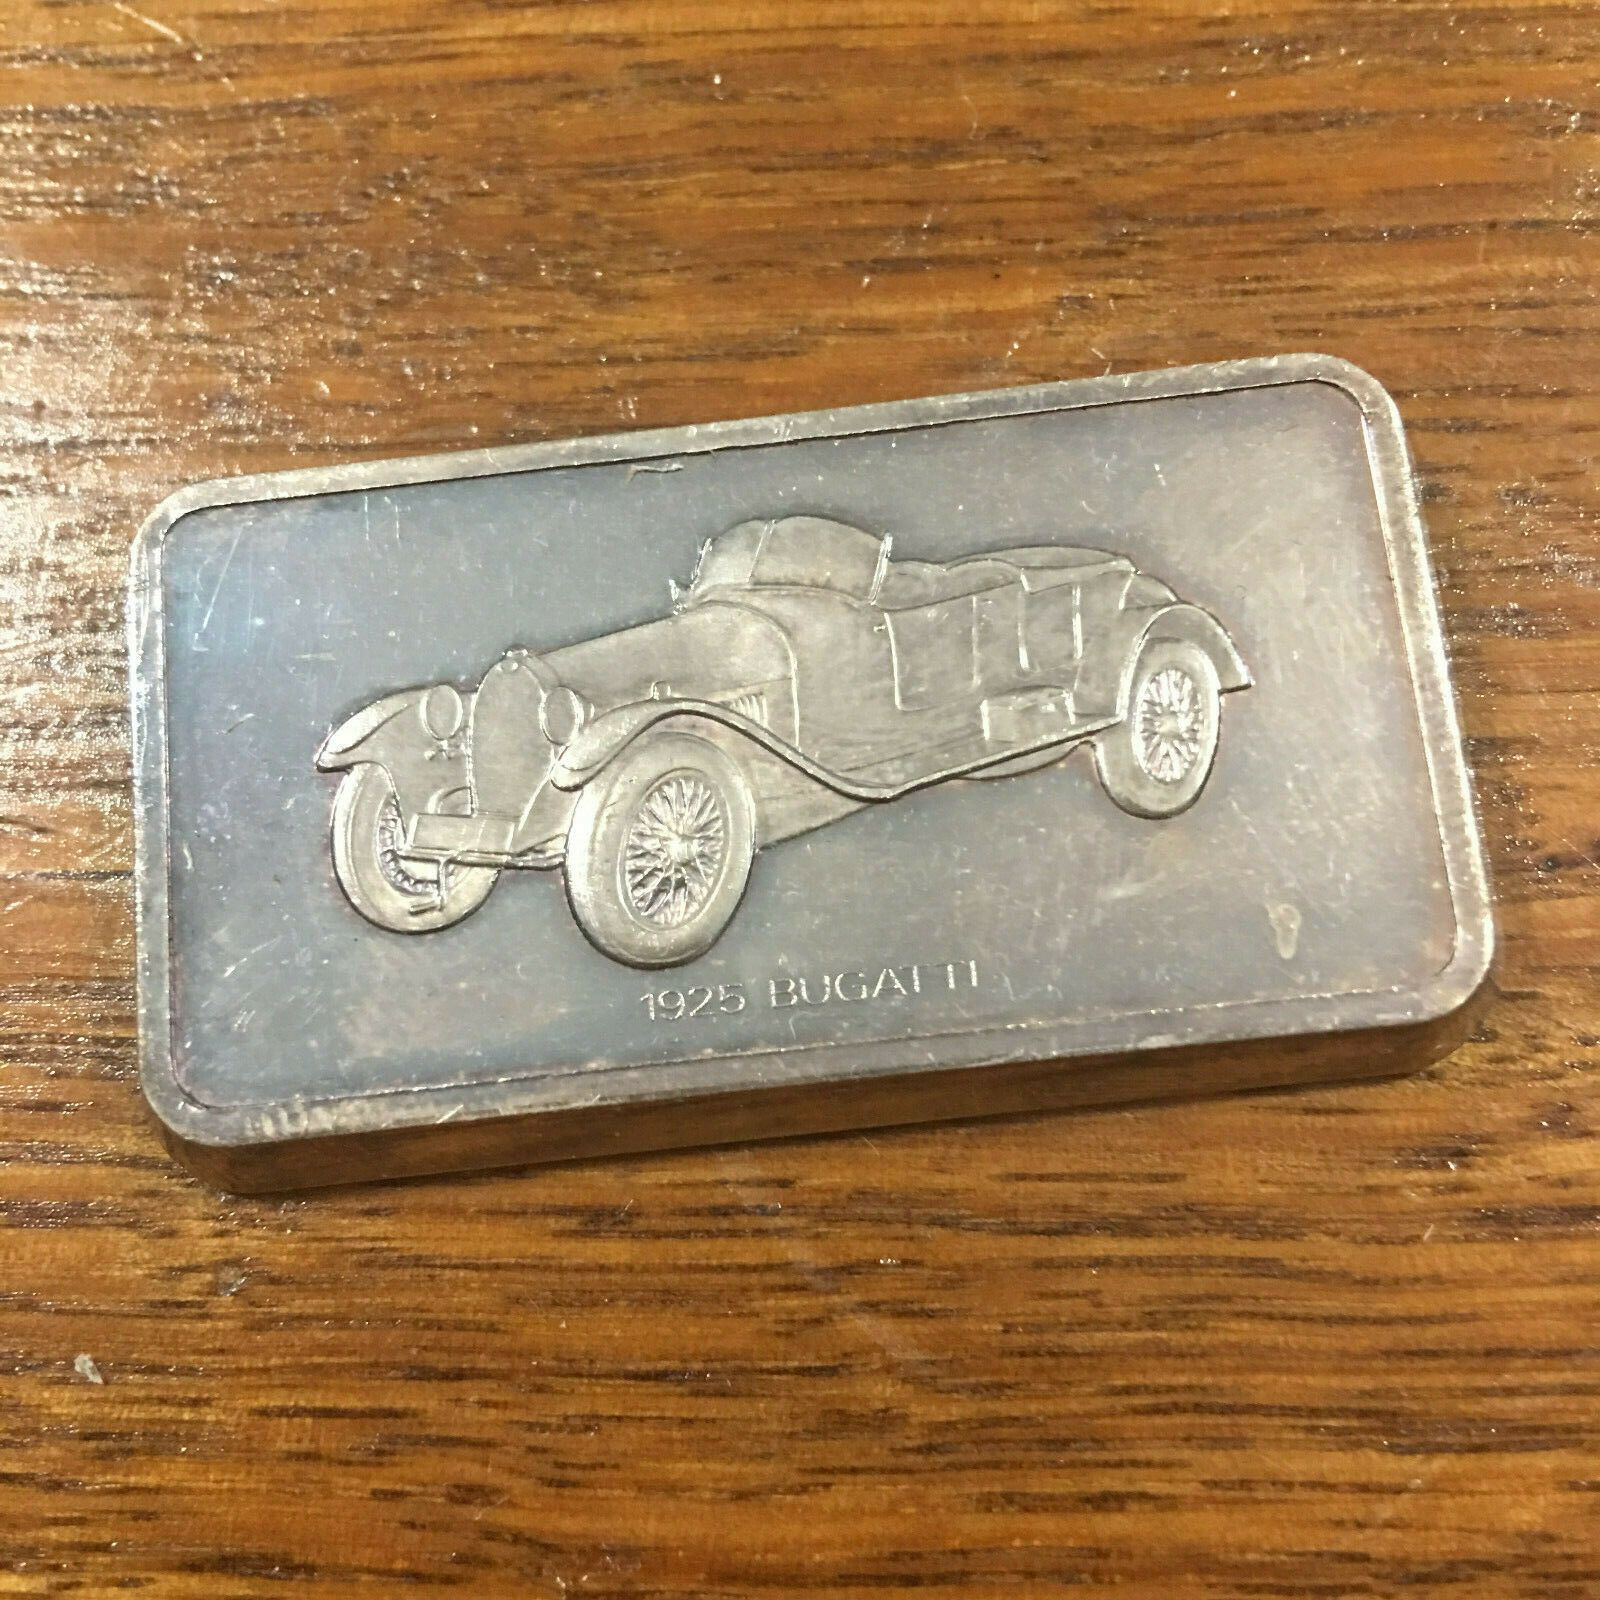 1925 Bugatti Sterling Silver Ingot/Bar | Vintage & Classic Car Great Collection …